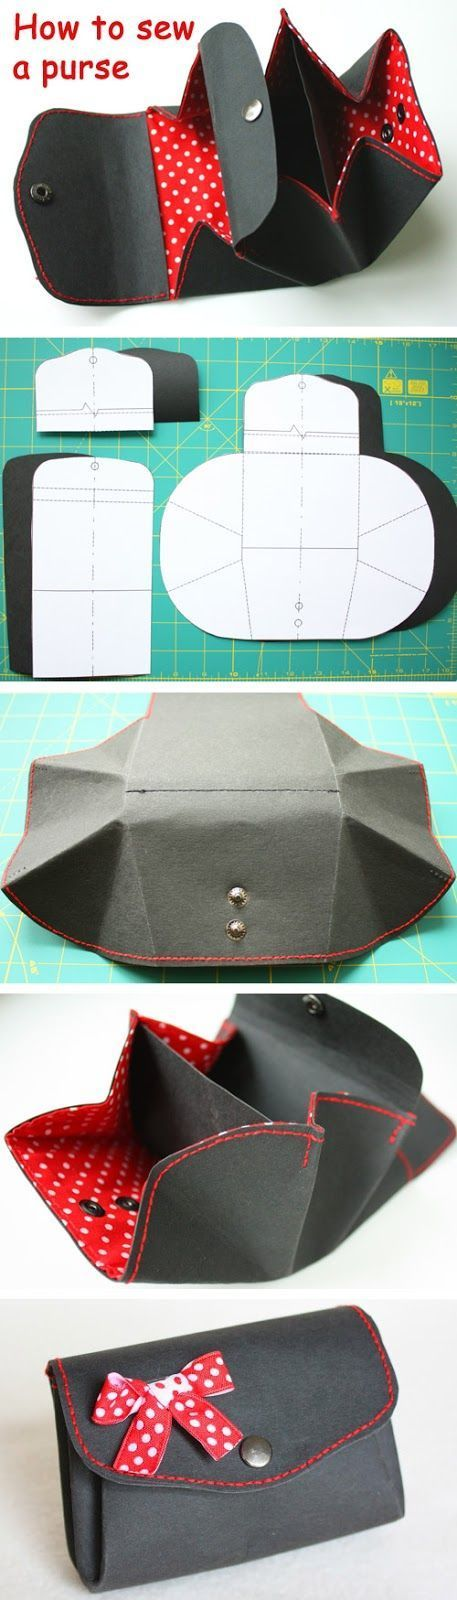 Coin purse made from Kraft-Tex paper. DIY tutorial in pictures. http://www.handmadiya.com/2015/10/purse-kraft-tex-fabric-tutorial.html - utiliser le lien ci dessus